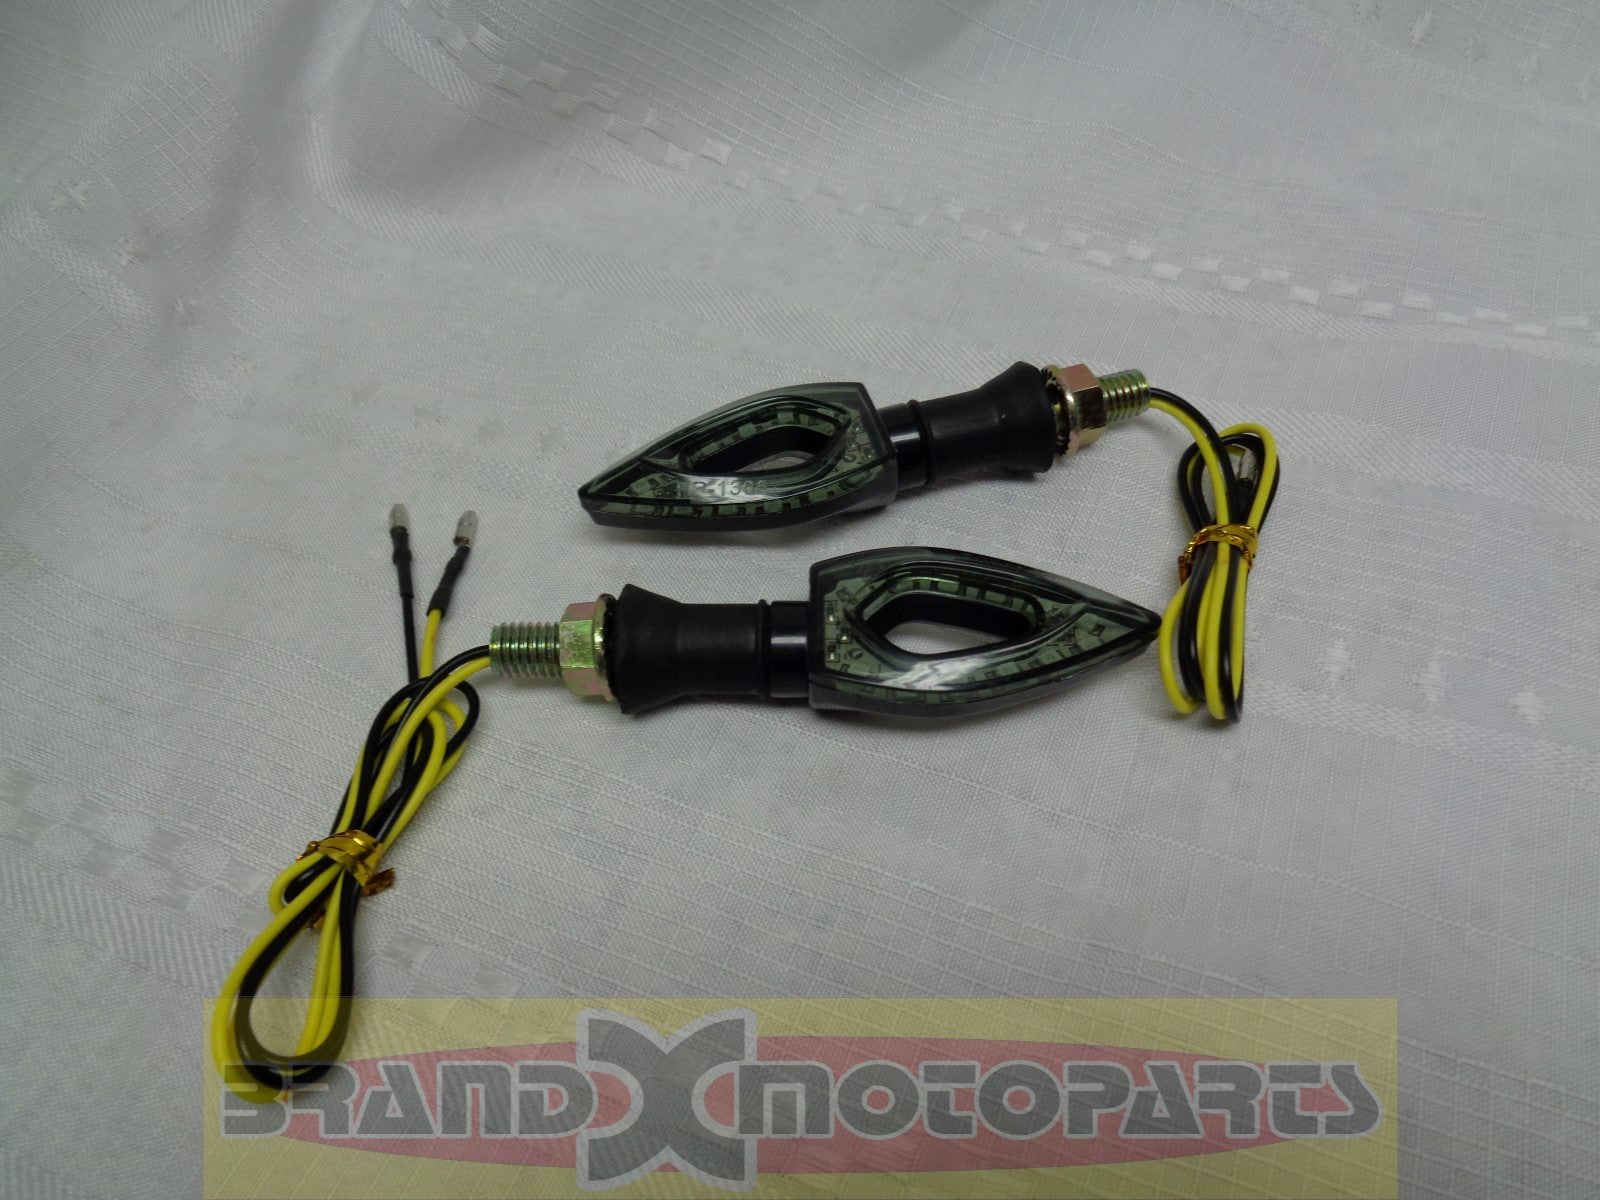 LED Turn Signal Indicator Light 12V for Motorcycle, Buggy's and Scooter's